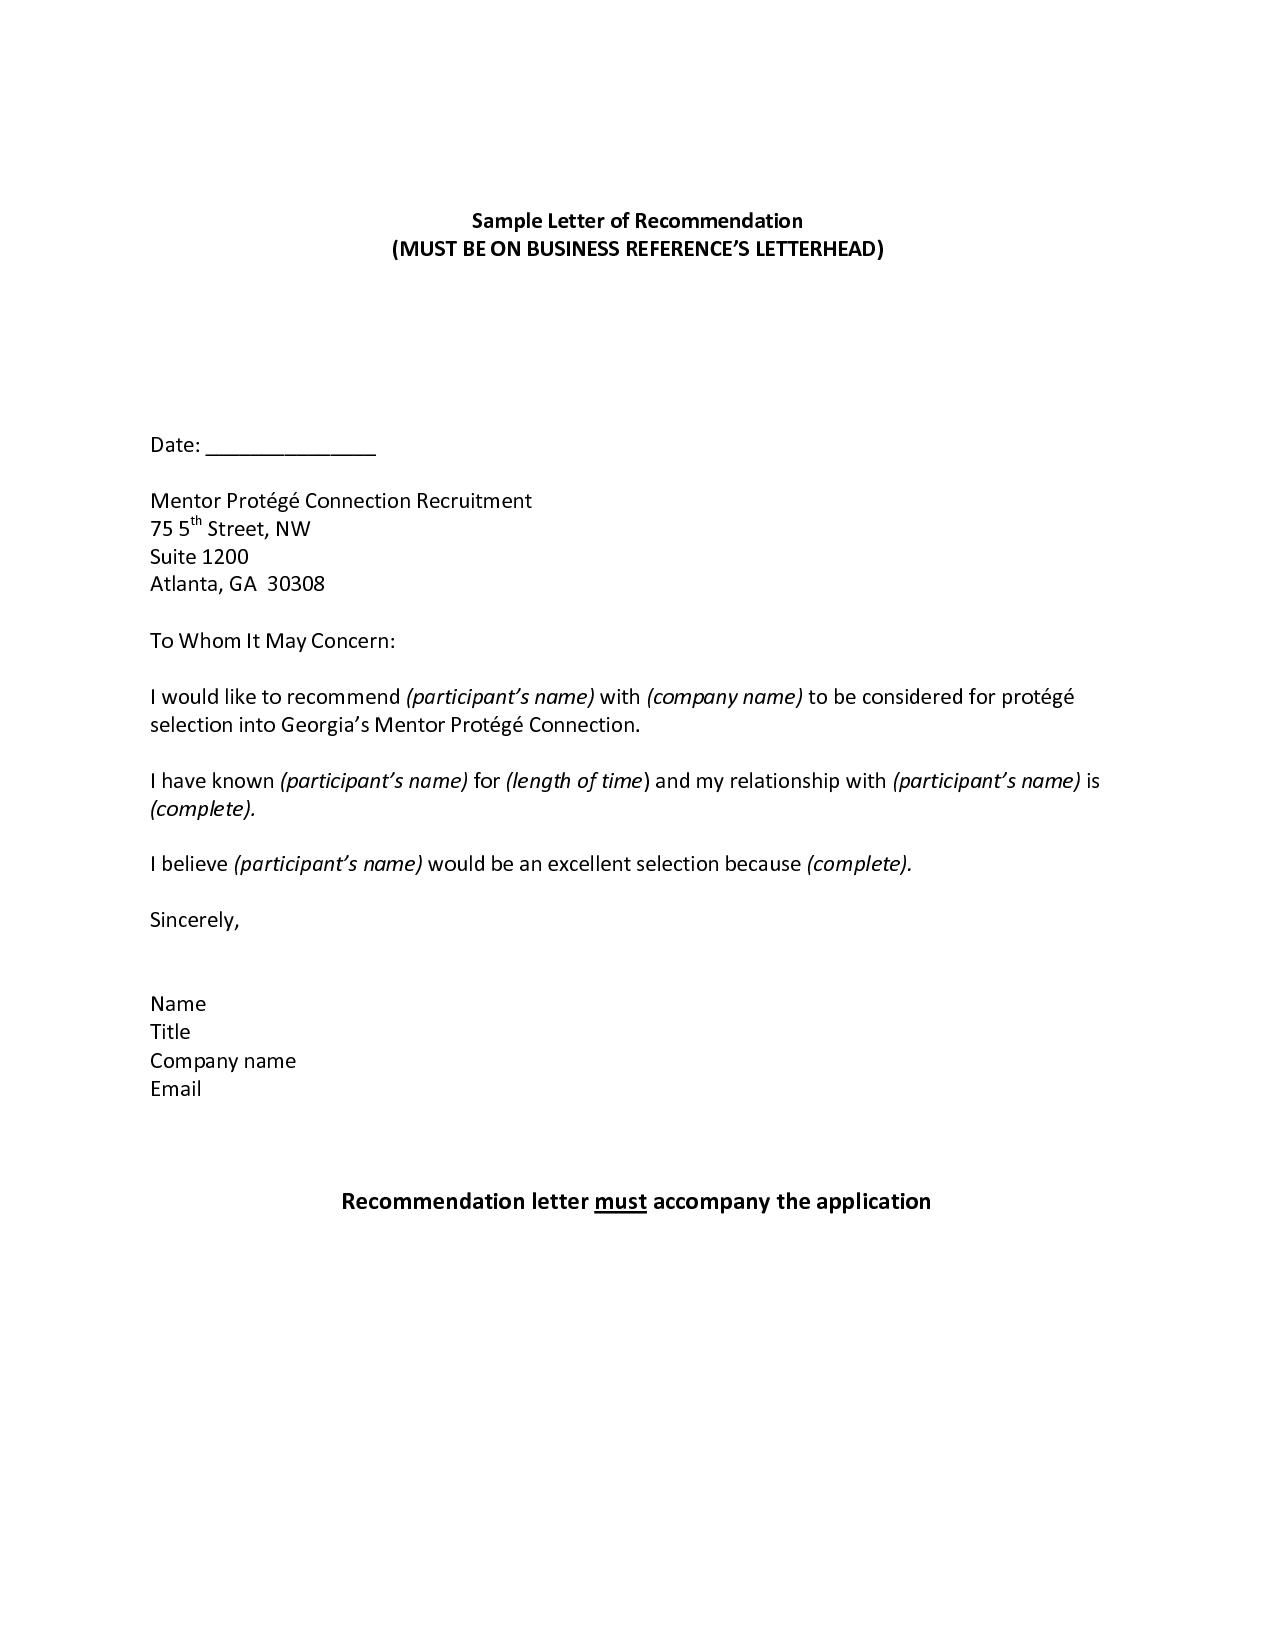 Format Letter Of Reference Professional Reference Sample Recommendation Letter Jos .